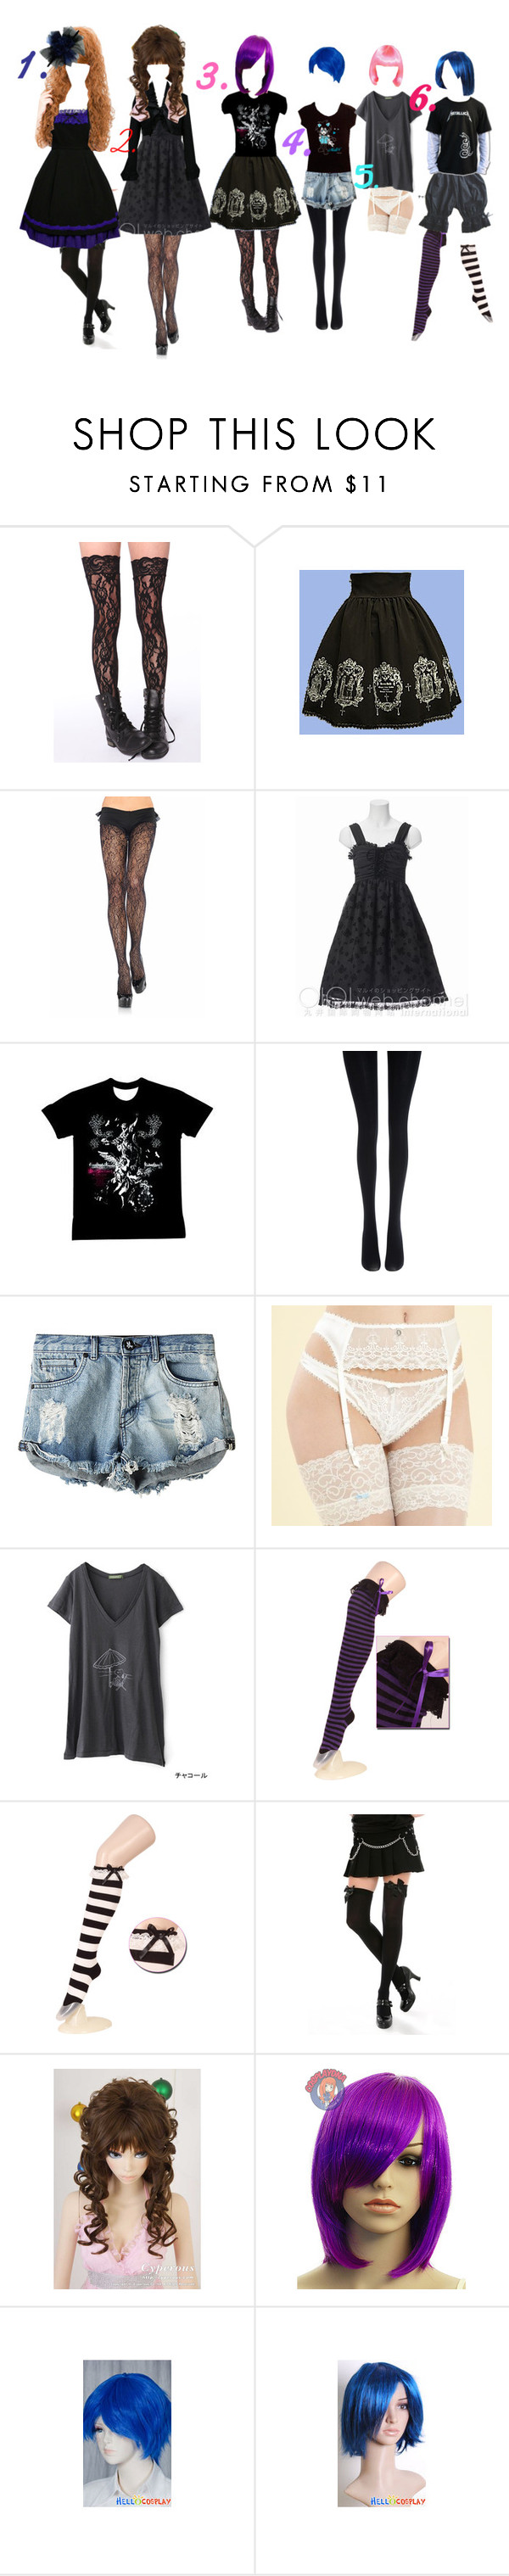 """""""Daily outfits"""" by caaandy ❤ liked on Polyvore featuring Leg Avenue, Fogal, OneTeaspoon, J by Jasper Conran, nette' Leather Goods and Bodyline"""